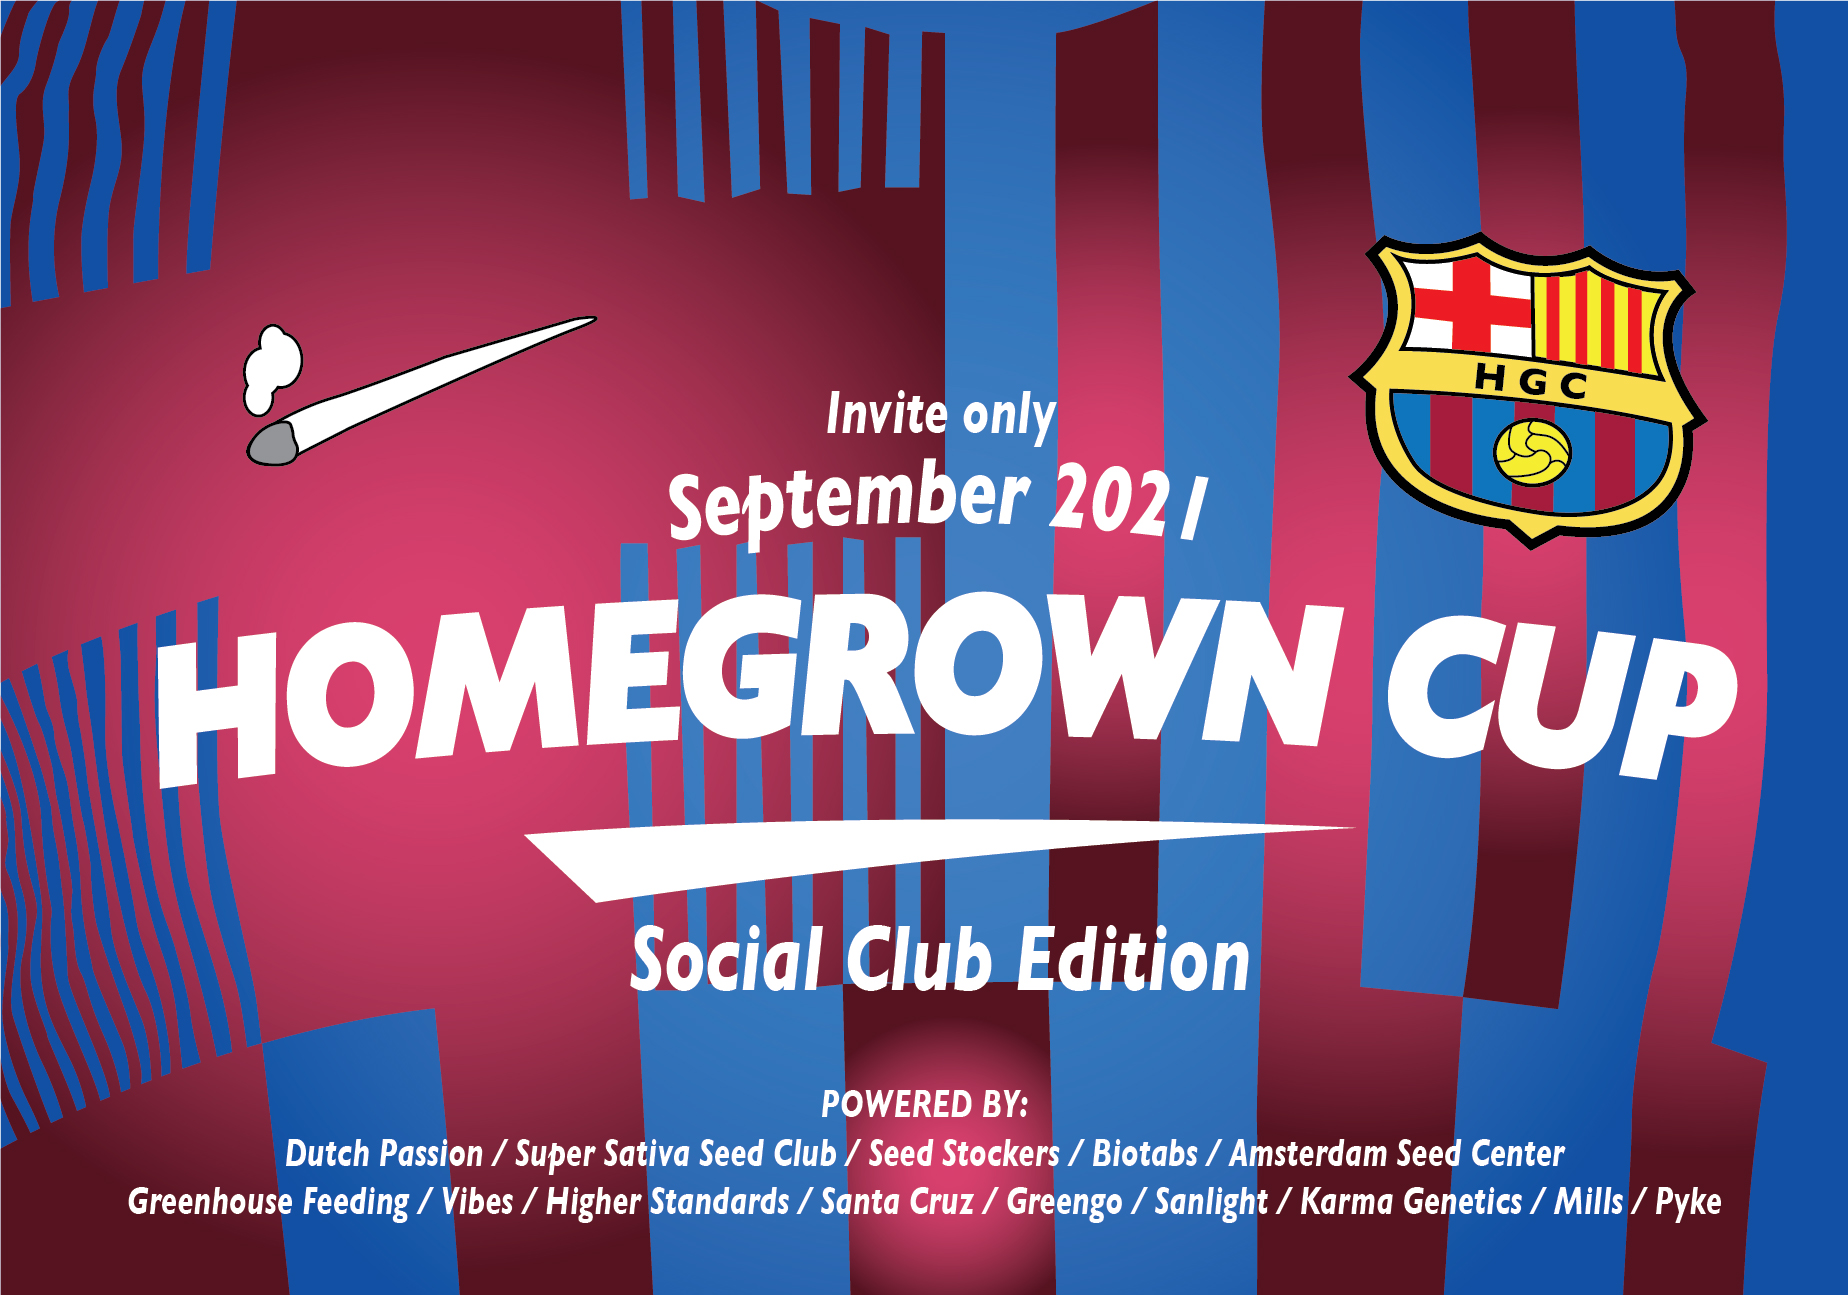 HomeGrown Cup 2021: Social Cup Edition (Barcelona)